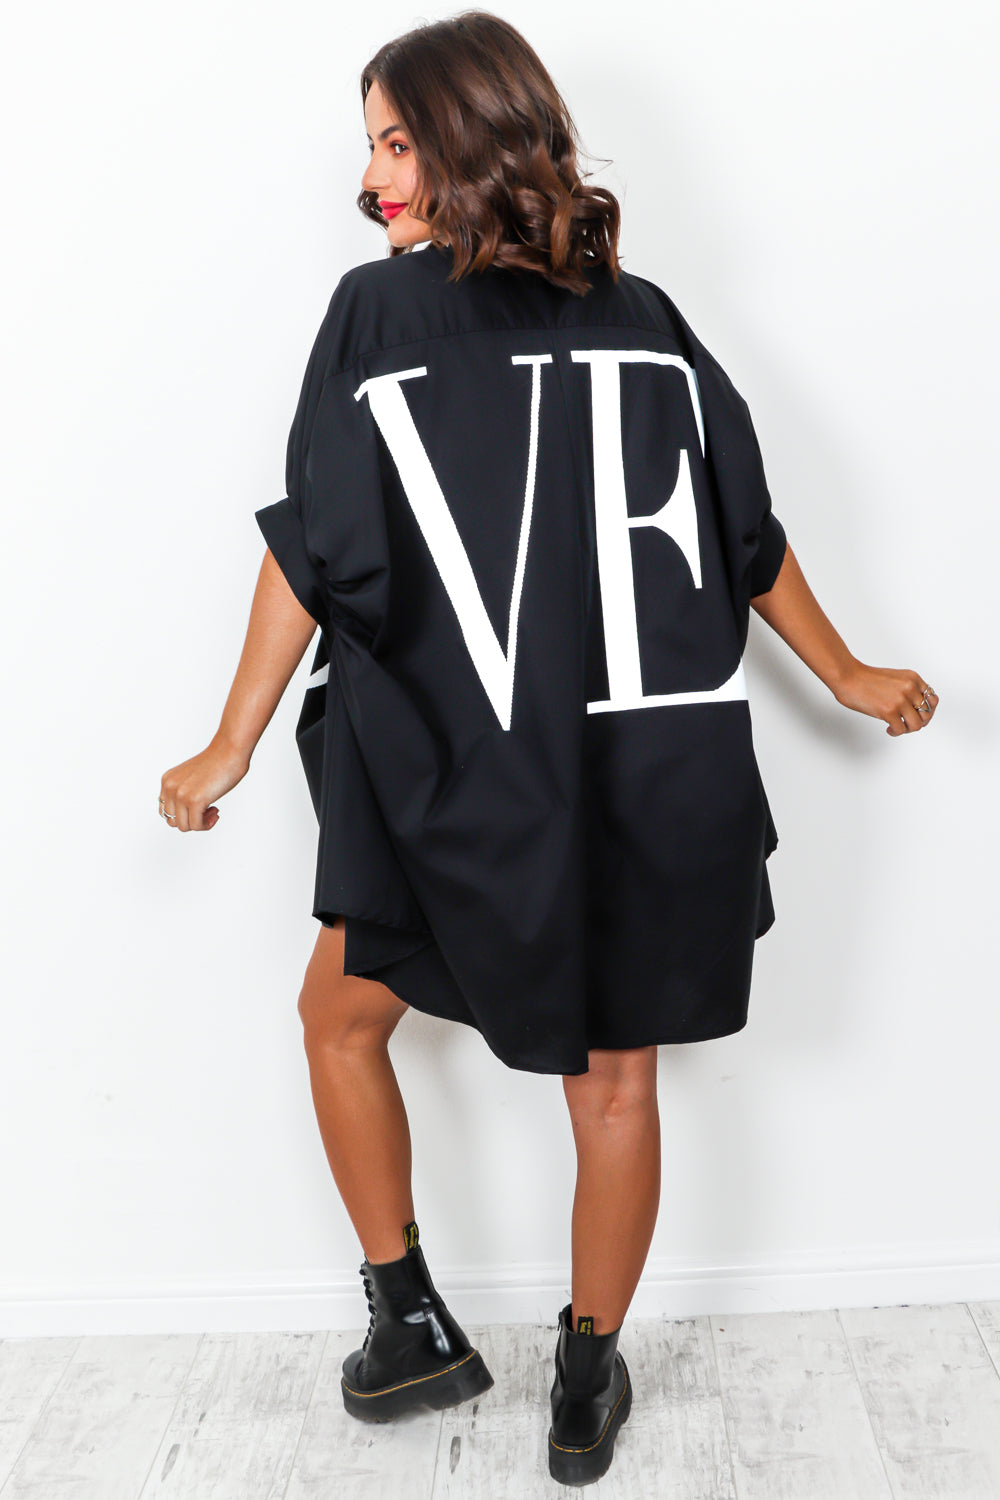 Spread The Love - Shirt Dress In BLACK